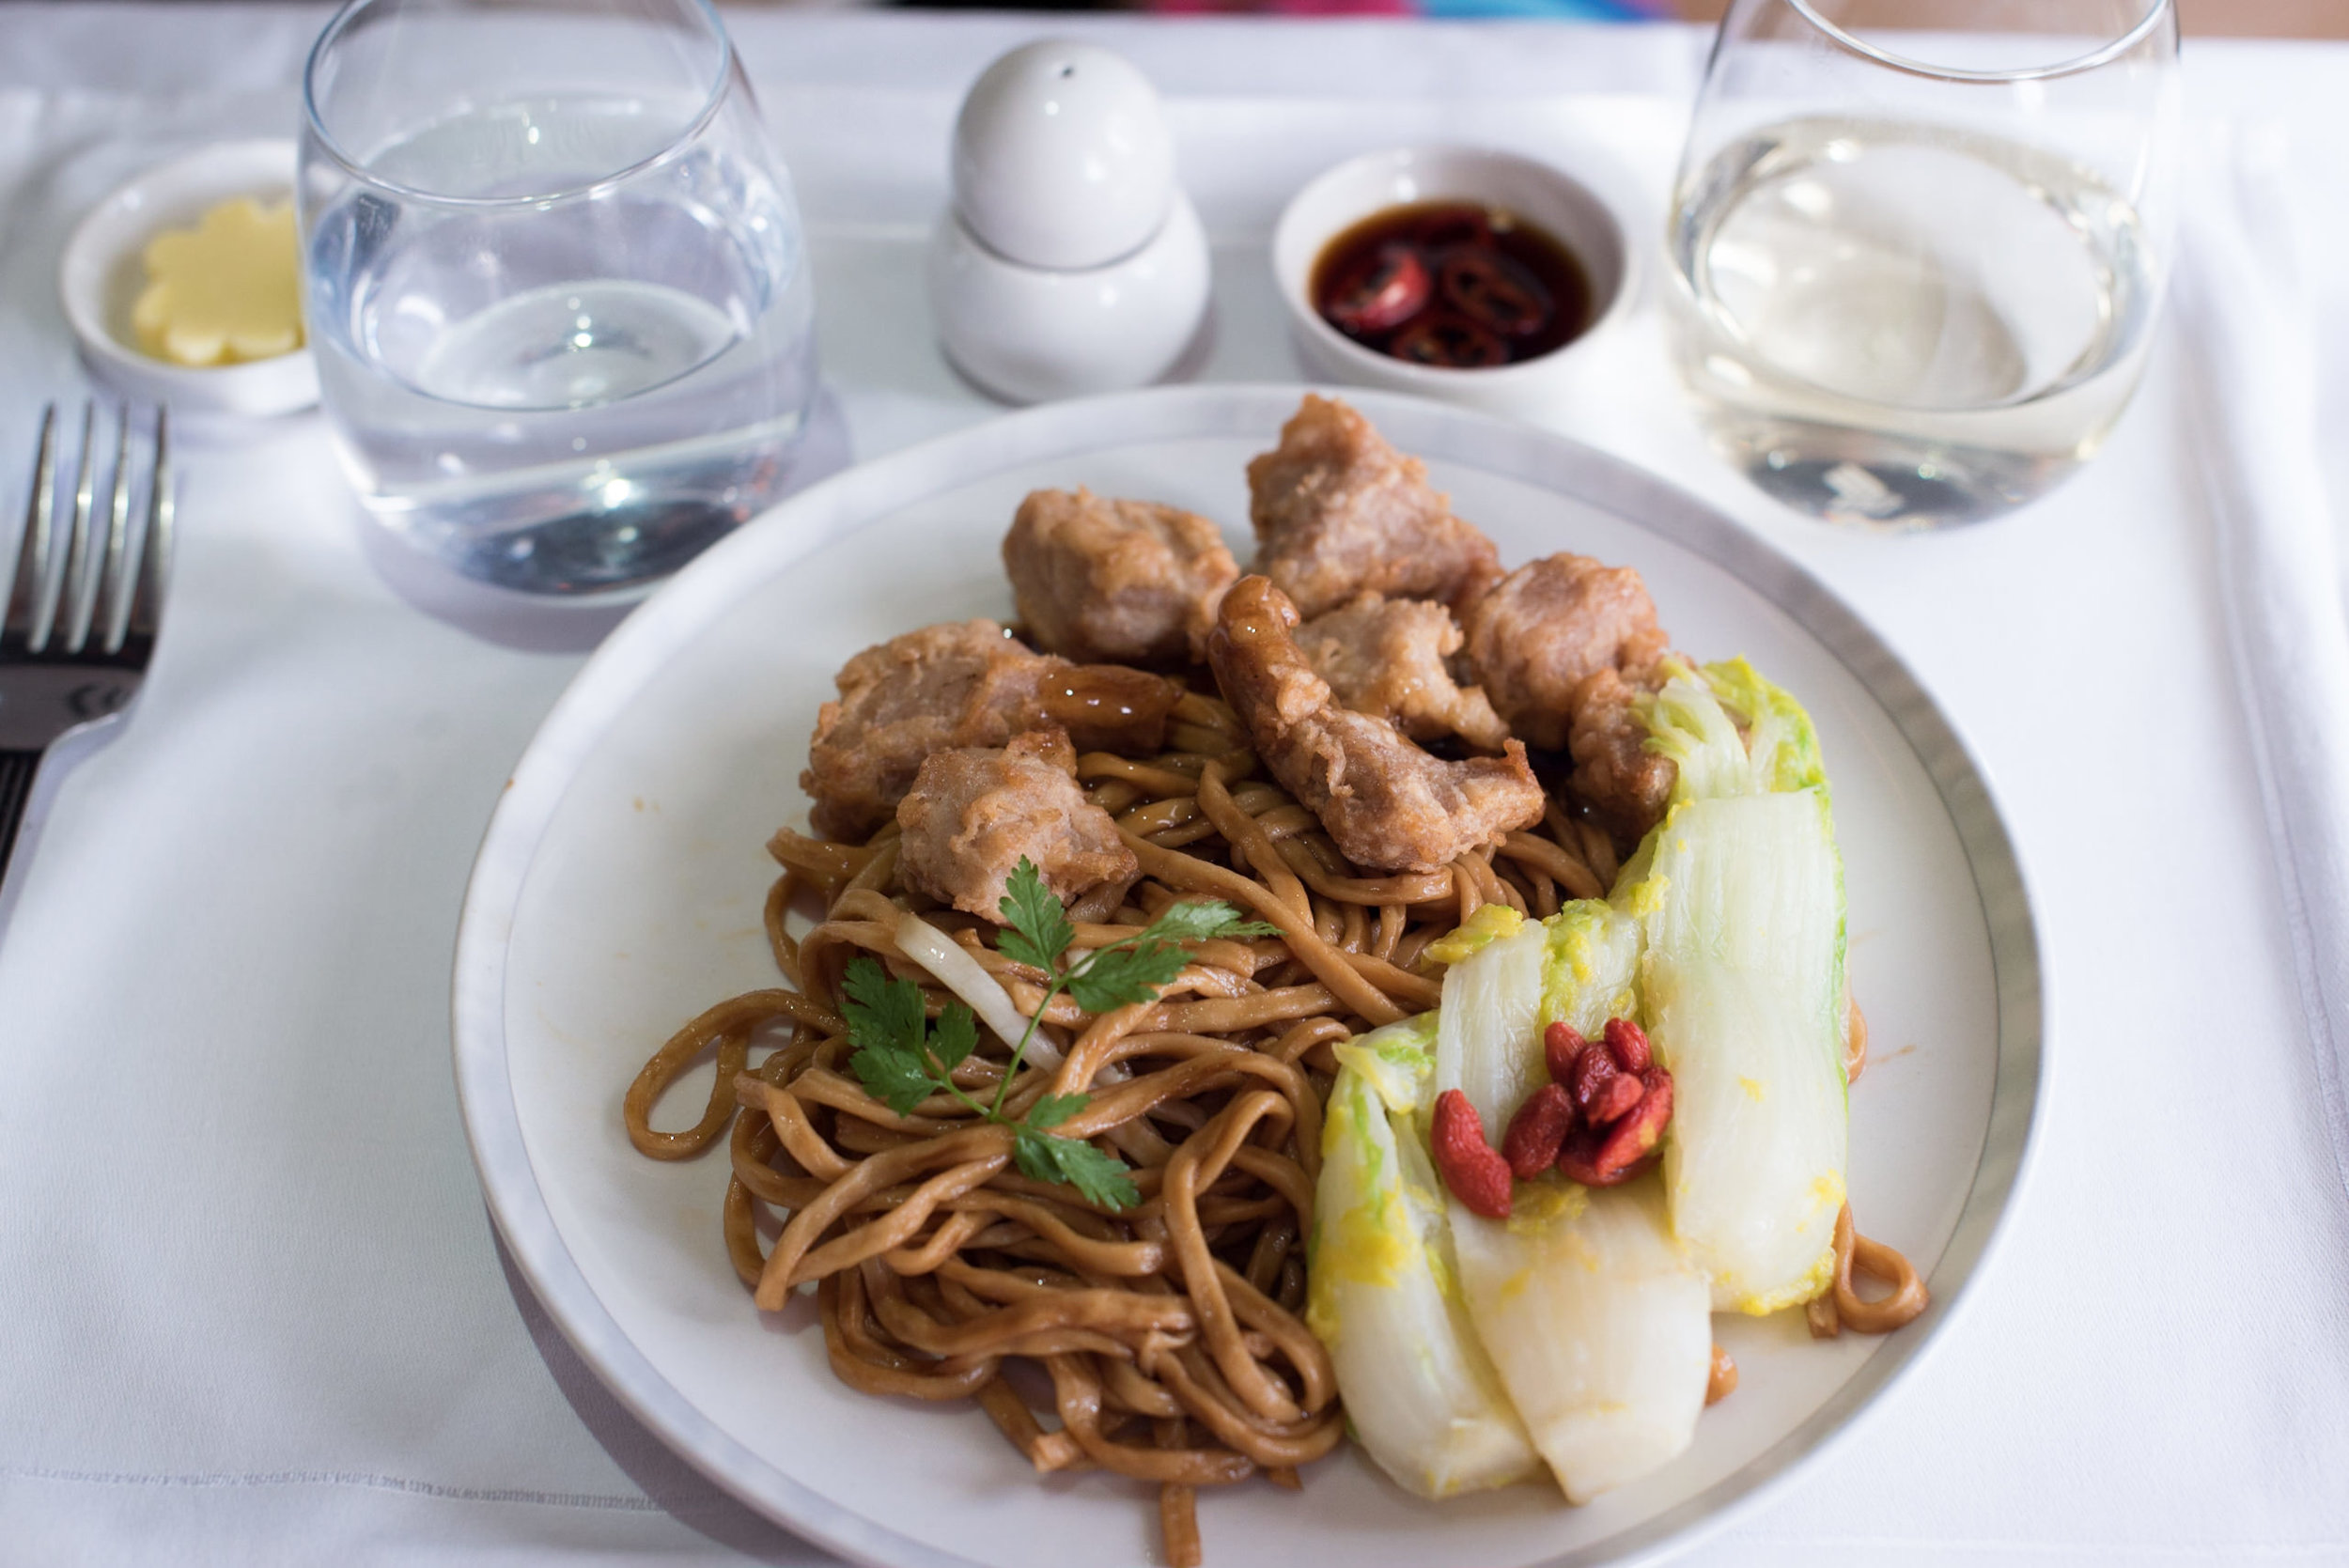 Iberico Pork with Shanxi Aged Vinegar and Enoki Mushrooms Ee Fu Noodles - Lunch Service Singapore Airlines Business A380-800 - HKG to SIN